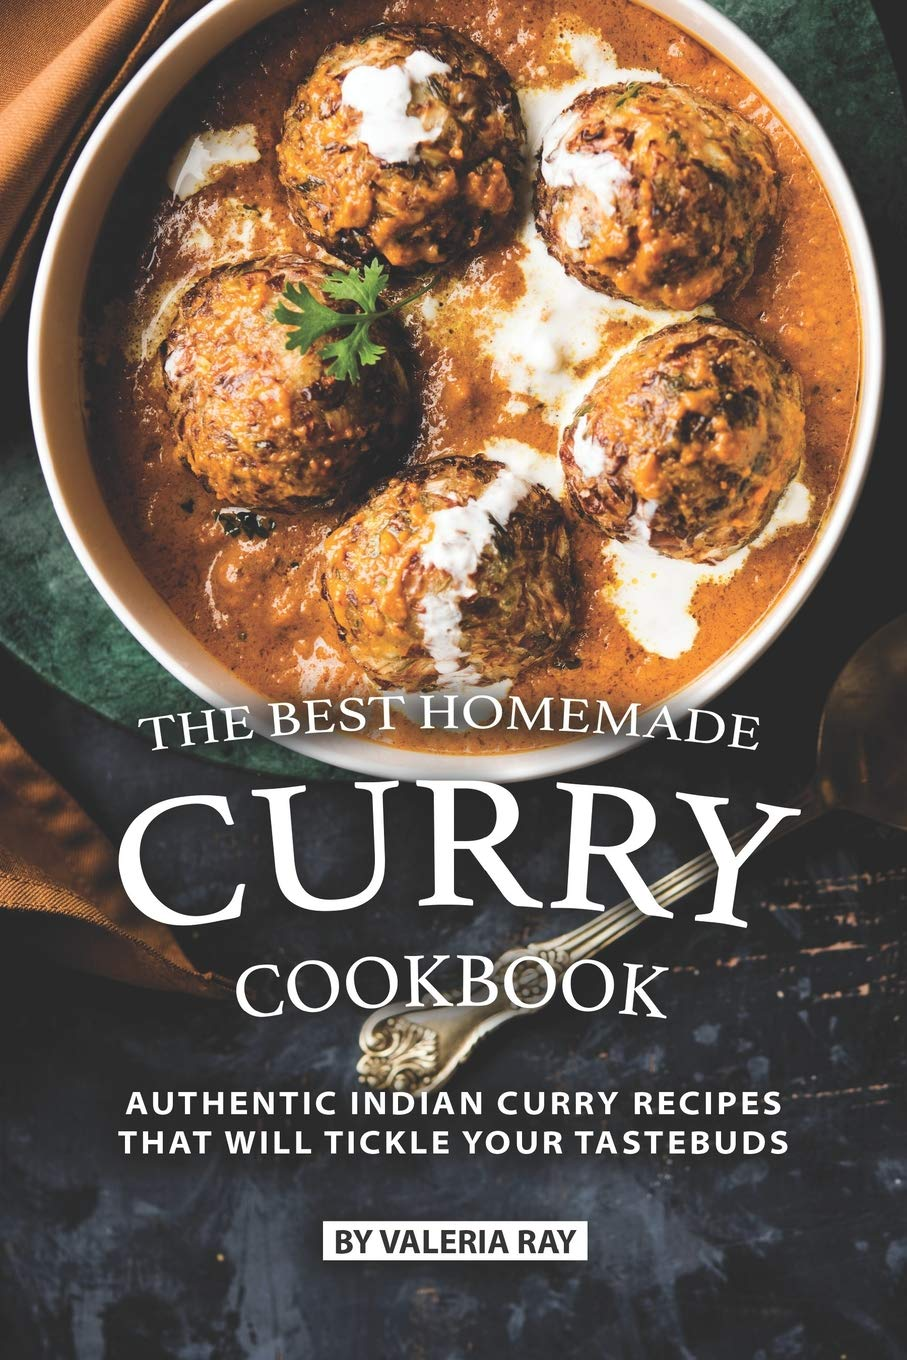 The Best Homemade Curry Cookbook Authentic Indian Curry